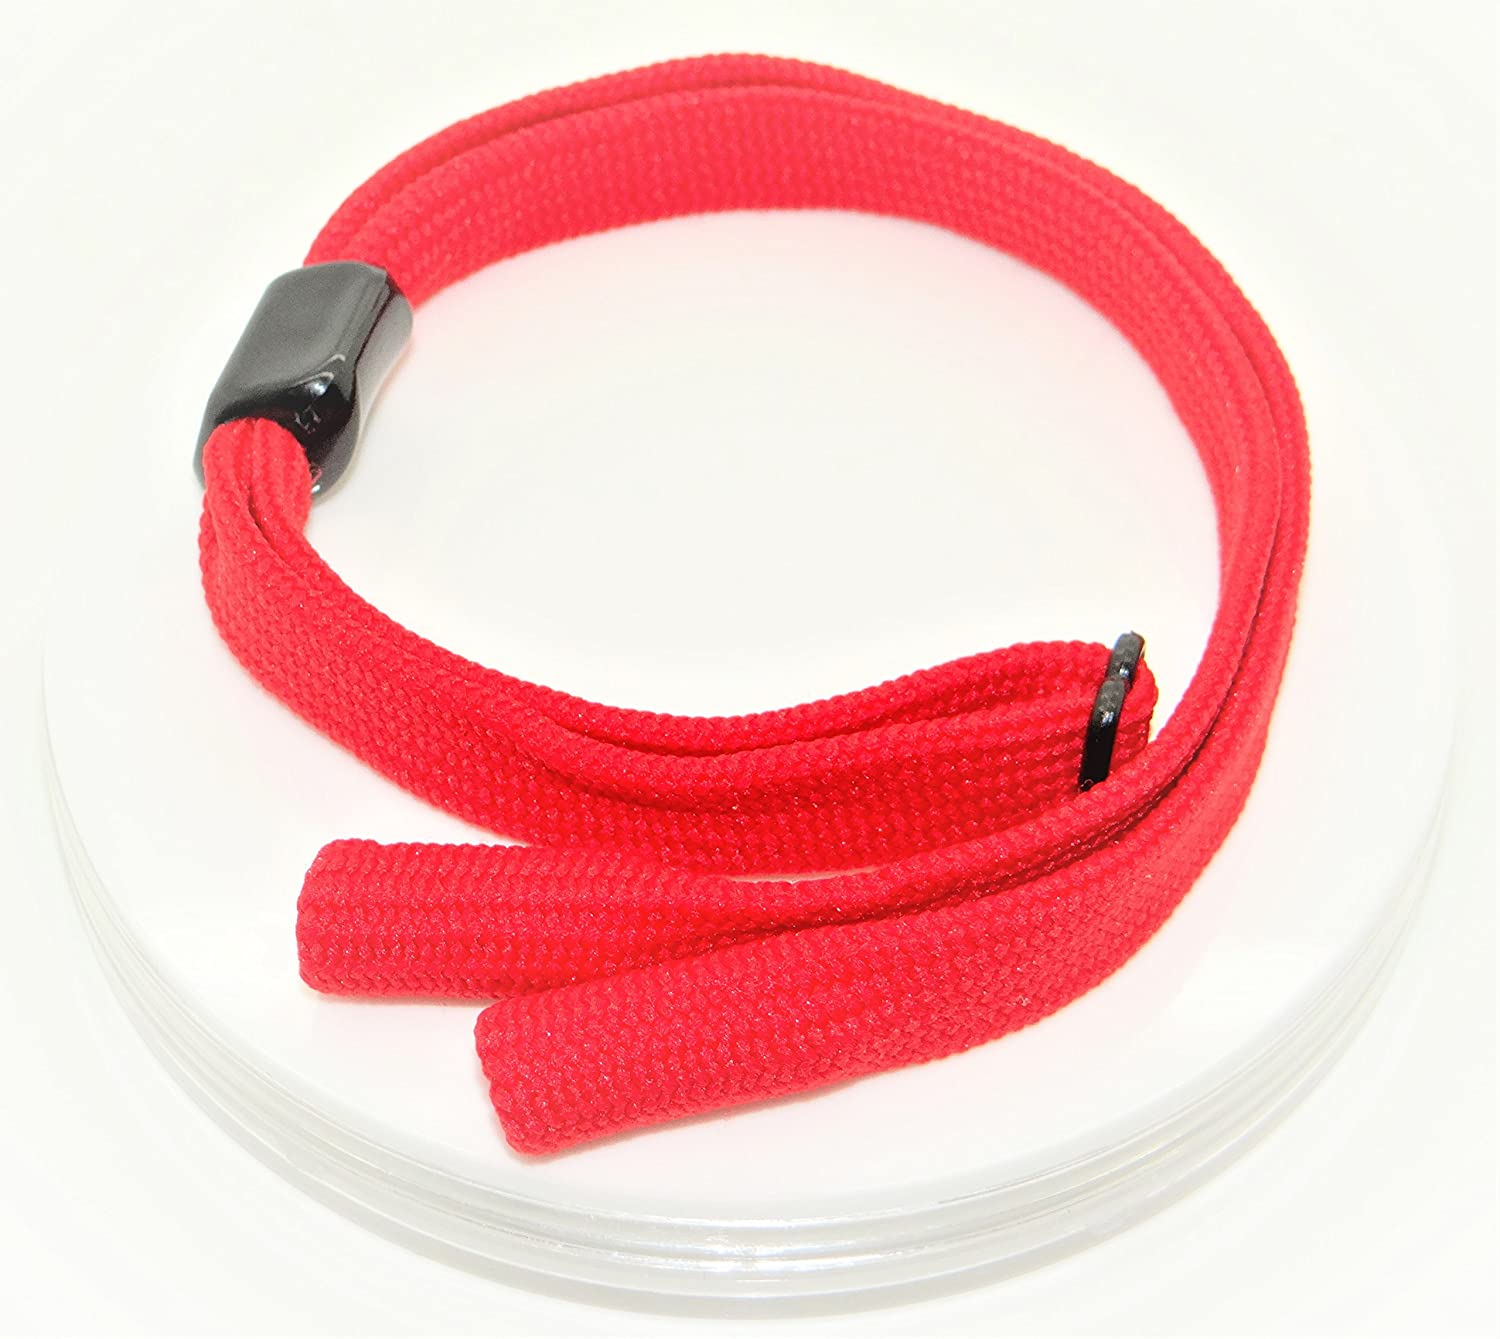 Glasses Retainer Cord Neckless Strap Sportive Adjustable Pipe Ends Design *4 Colours* - SG-UK Asia 60cm Sports Printed Design